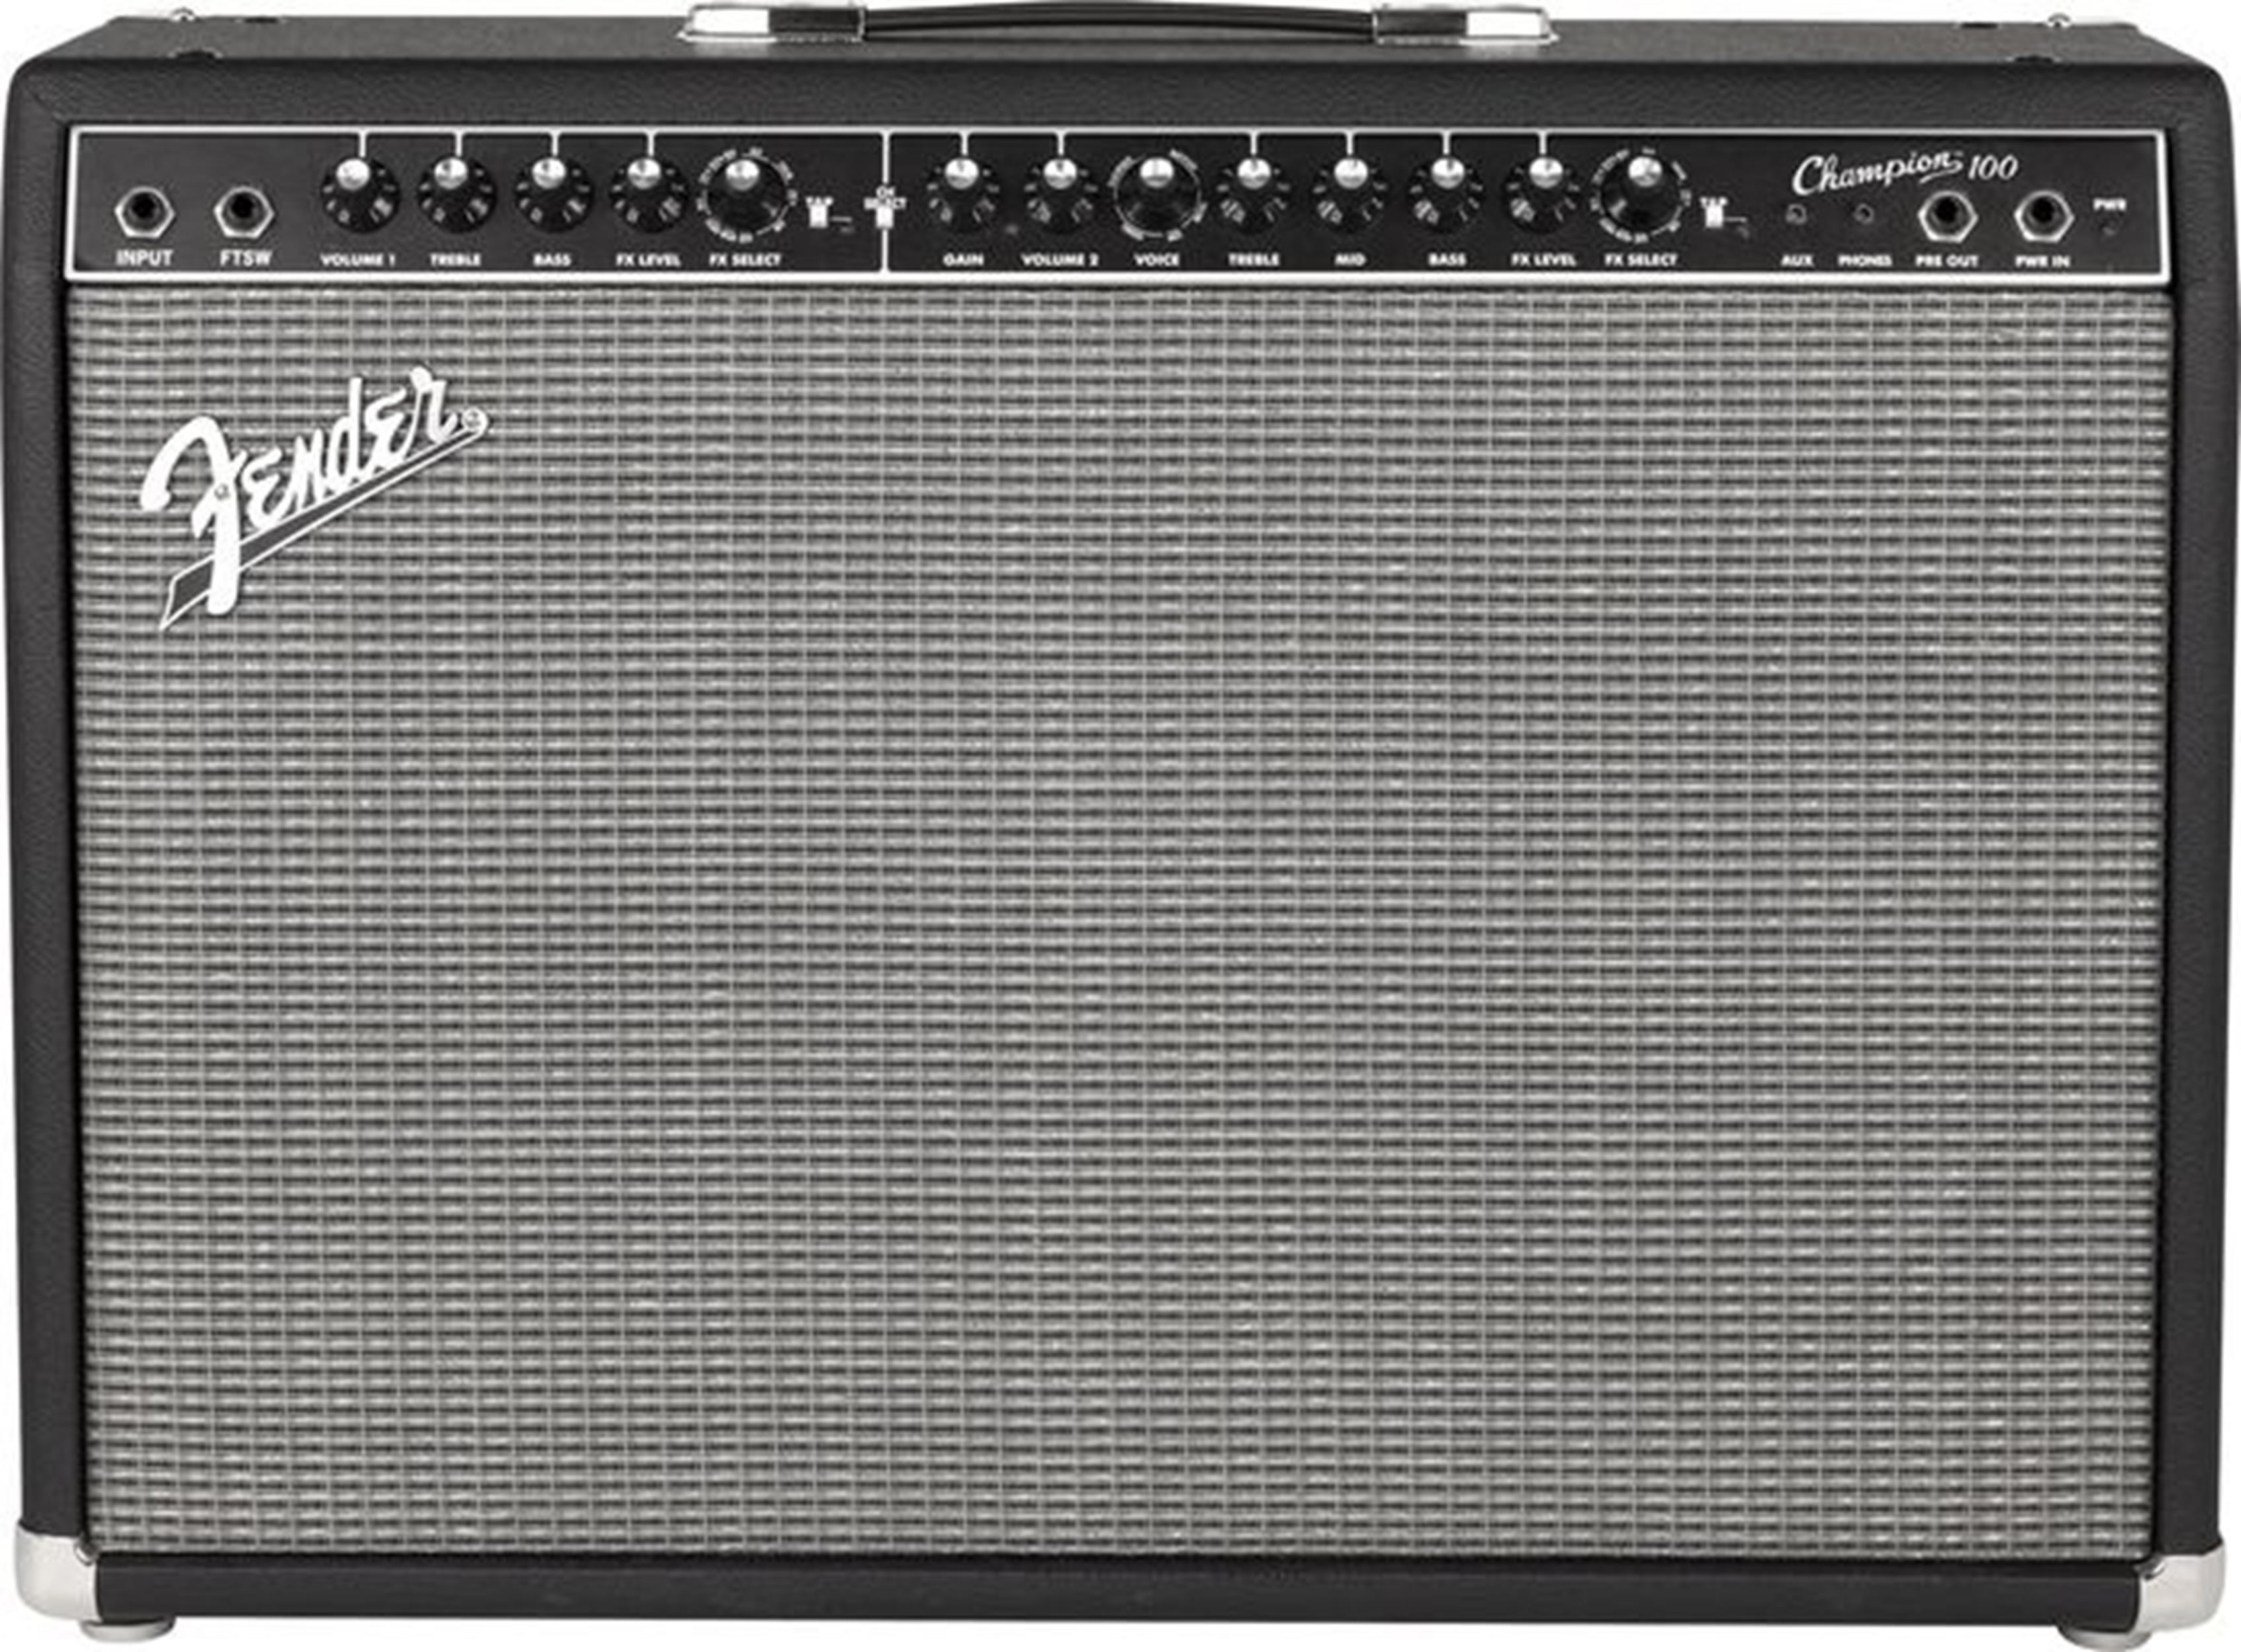 FENDER-CHAMPION-100-2330406900-sku-10525